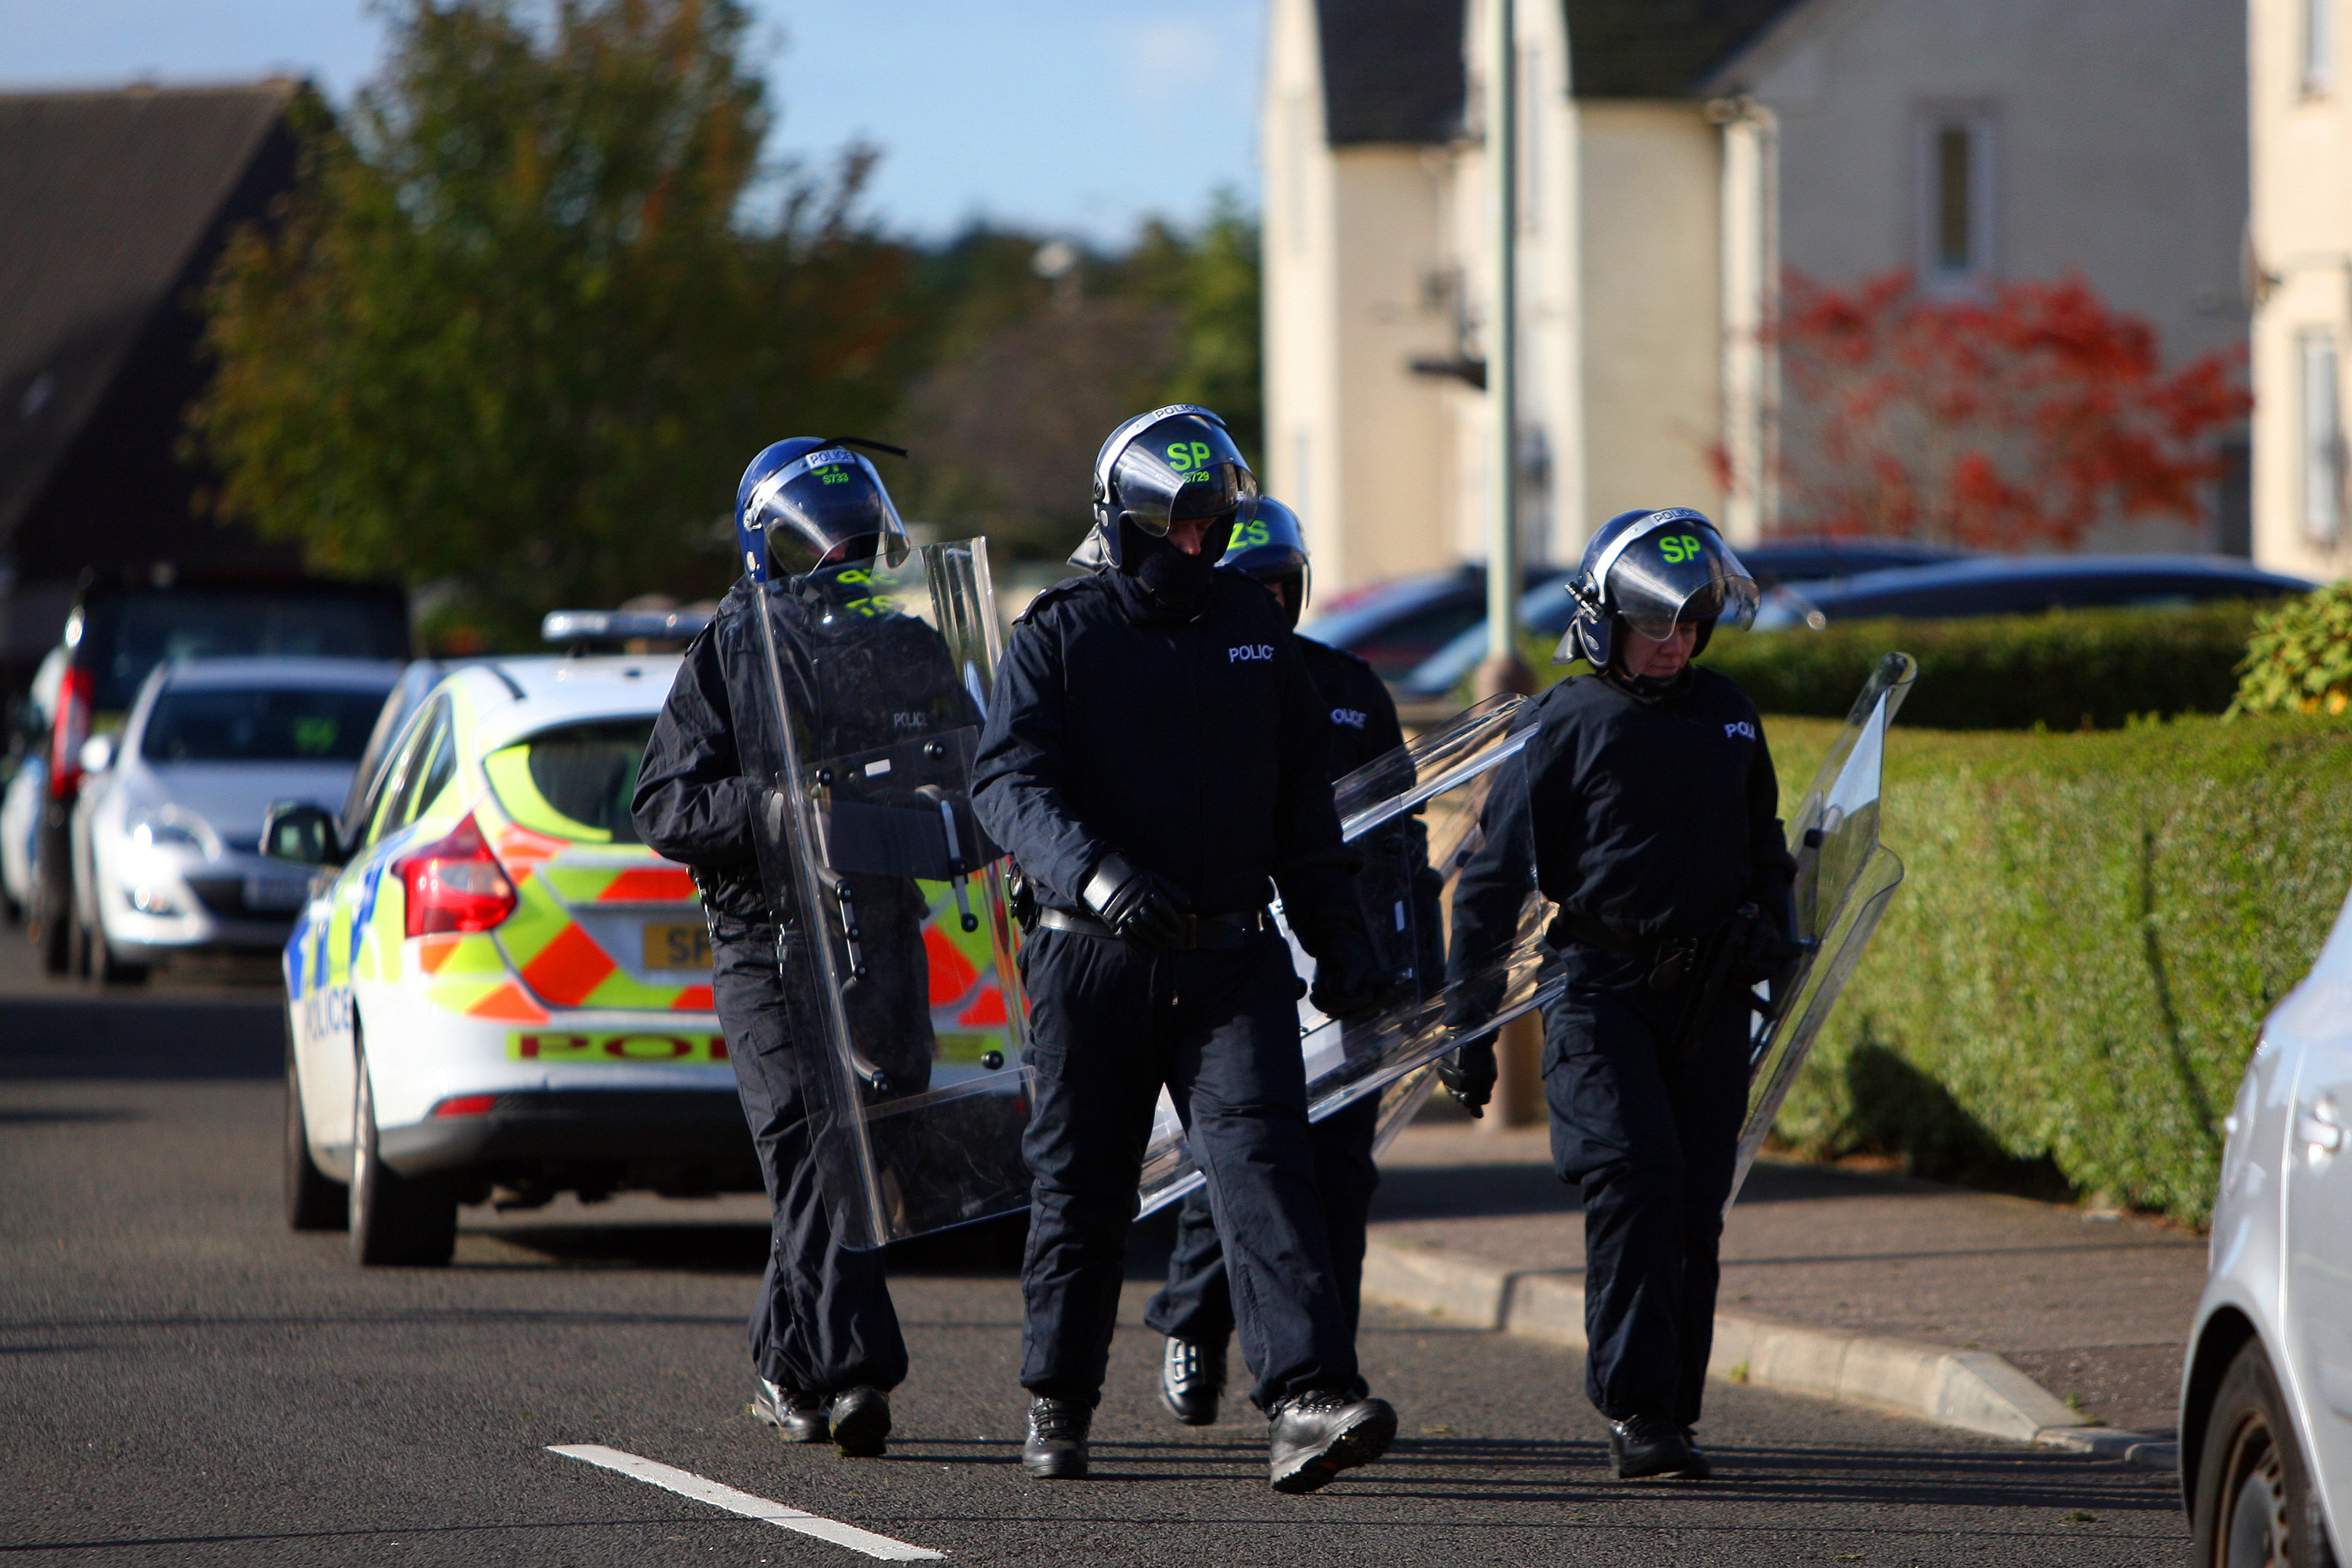 Riot police descend on a property in Wellbank on Sunday morning.